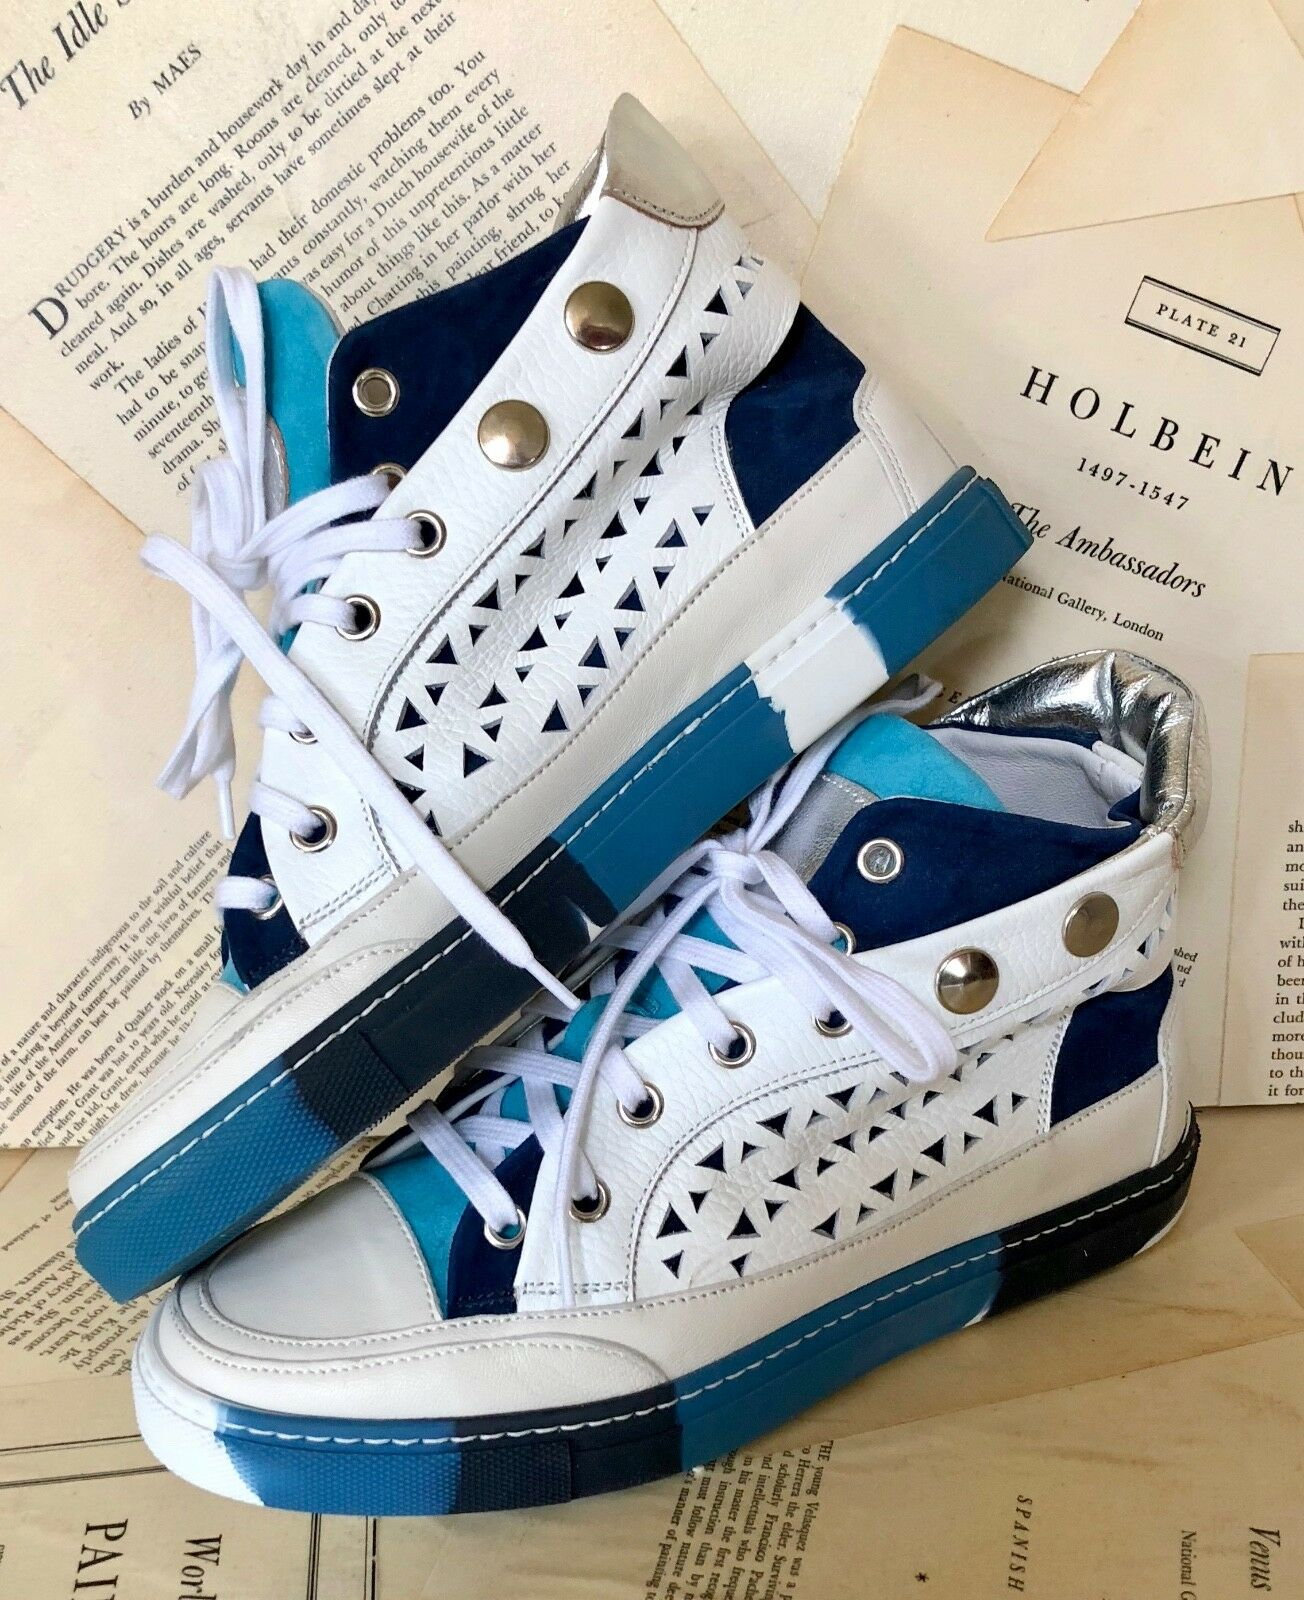 NEW Free People white Leather Laser Cut Studded Hi Top Sneaker Boot 36   5.5-6